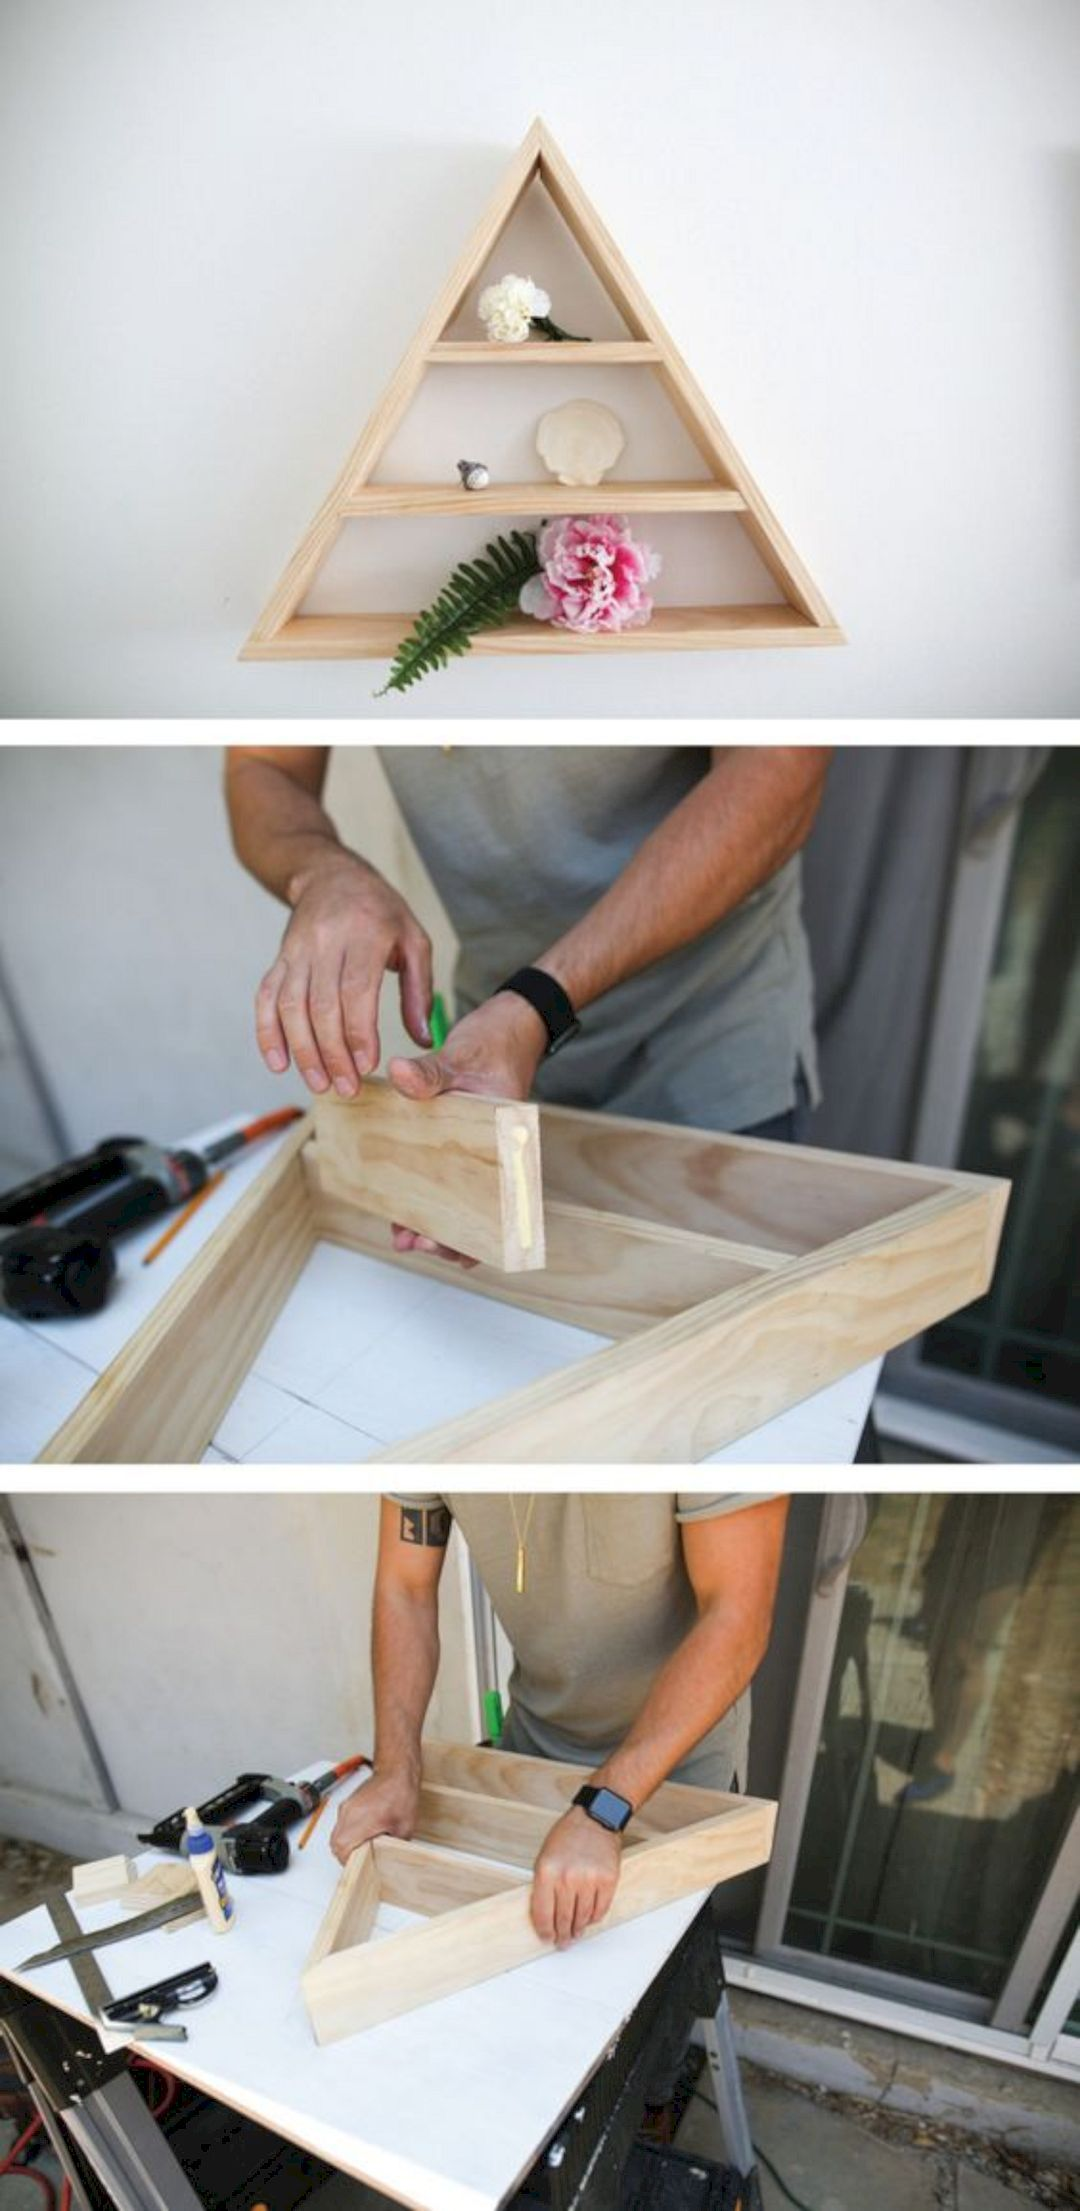 16 Creative DIY Home Decorating Ideas Https://www.futuristarchitecture.com/